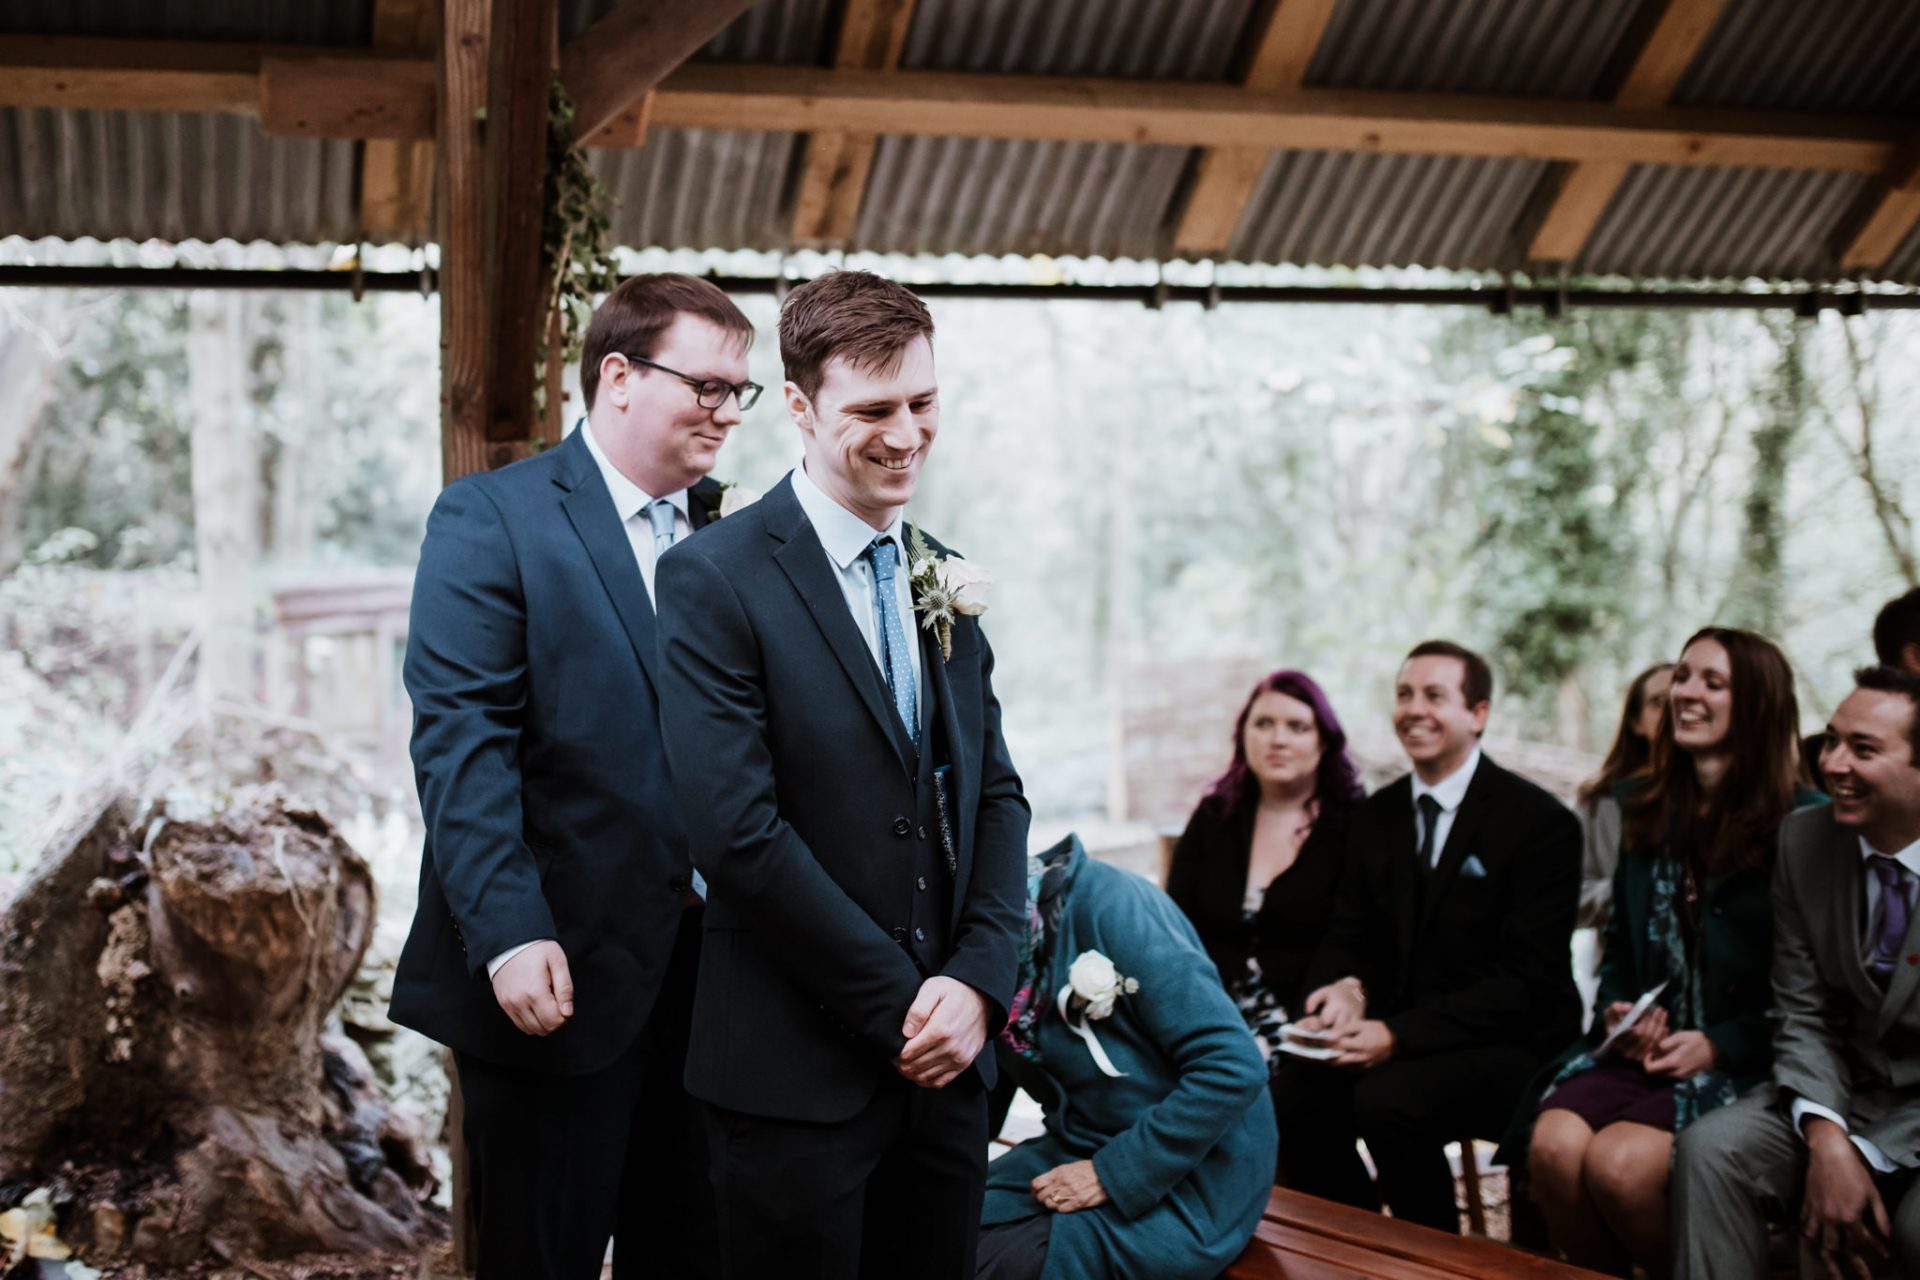 groom and best men waiting for the bride during the ceremony